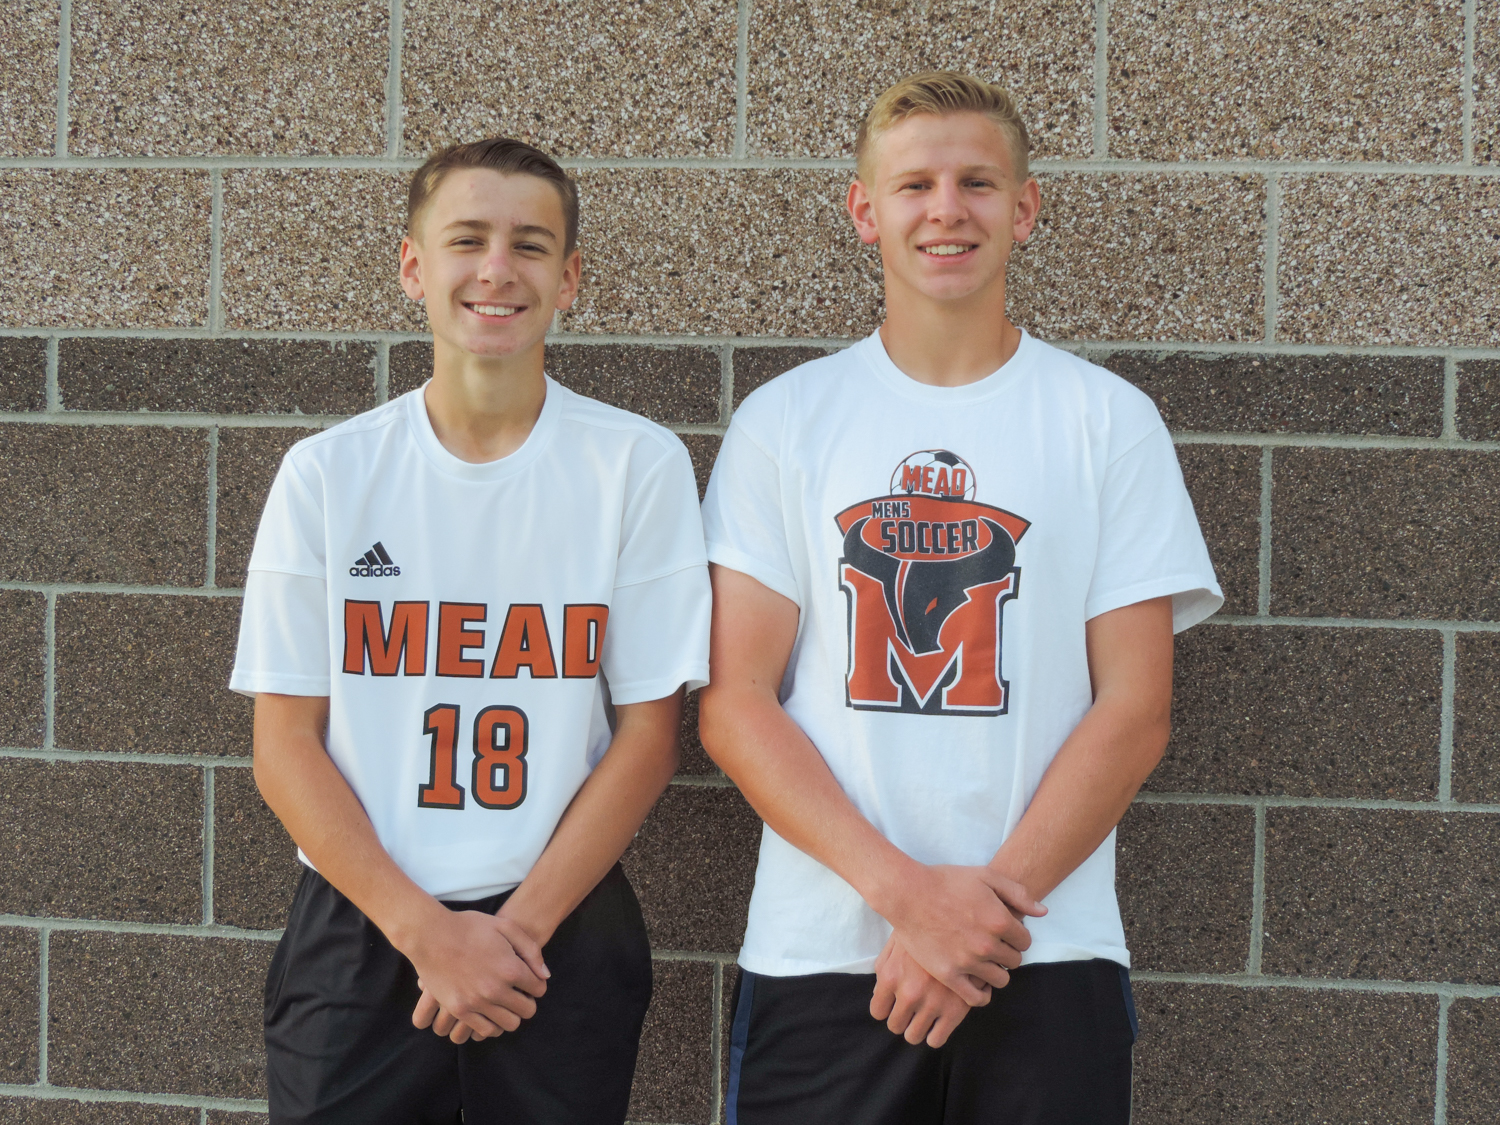 Wyatt and Winston Sears, two brothers on the Varsity Soccer team, showing their pride in their team here at Mead by wearing their favorite Mav gear.